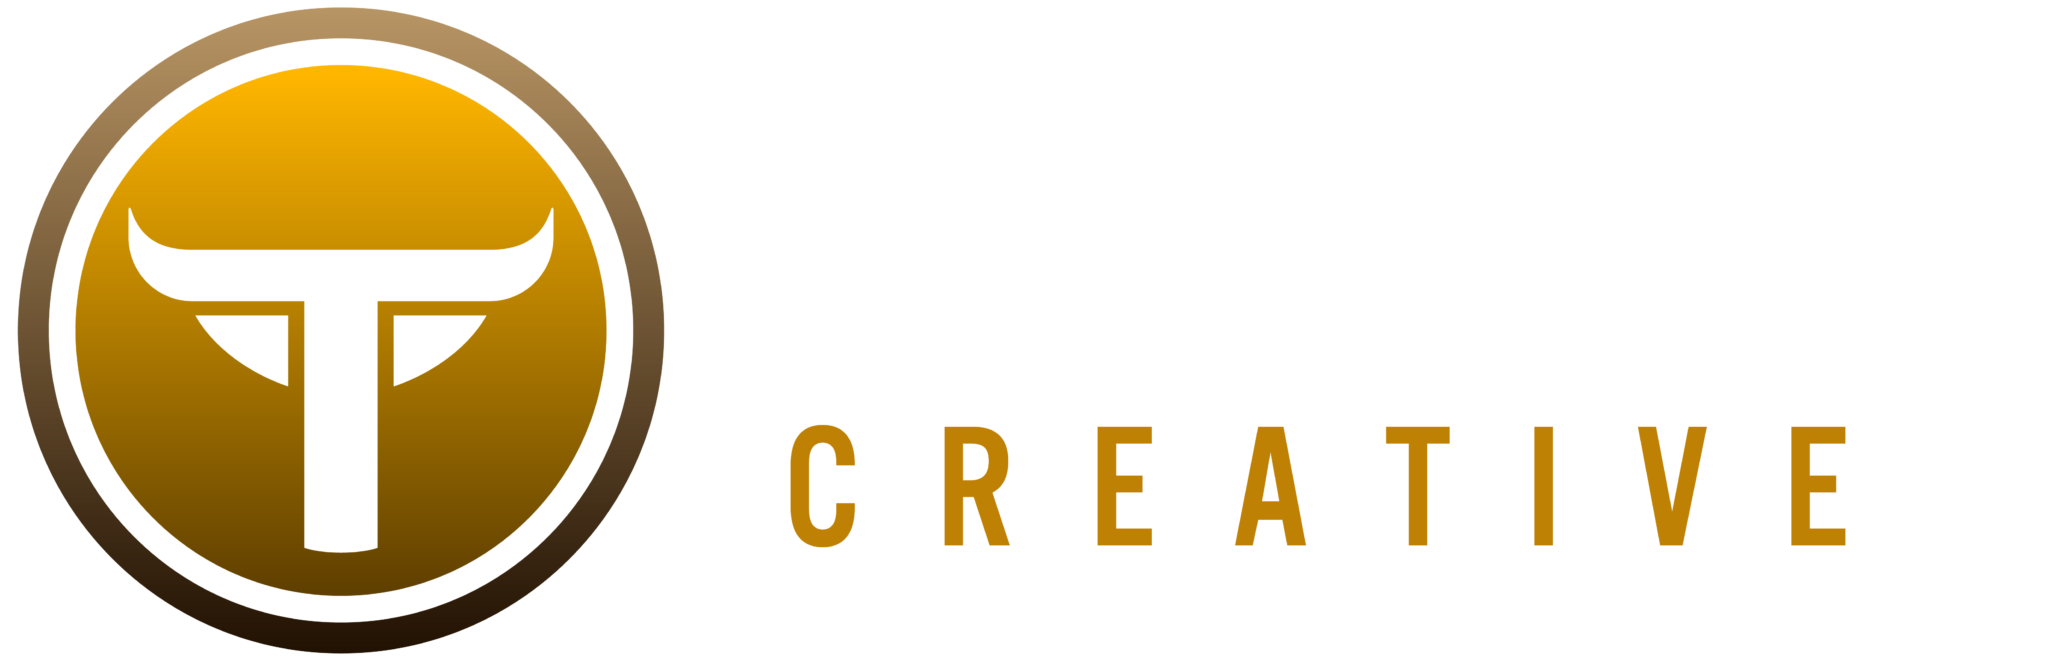 TaurusCreative Horizontal White